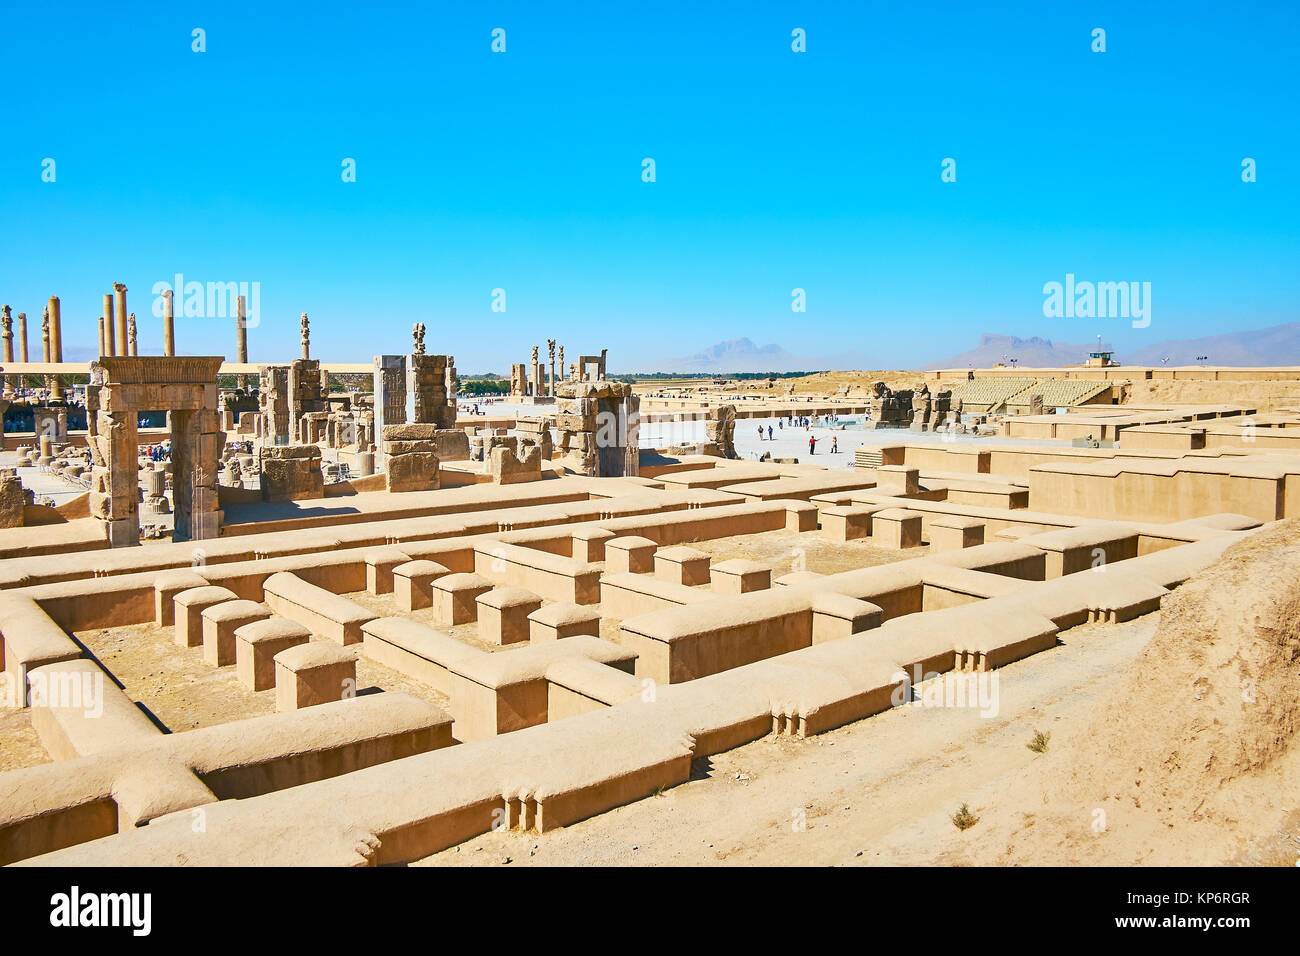 Persepolis archaeological site is one of the most popular landmarks of Iran, preserved since the ancient times. - Stock Image